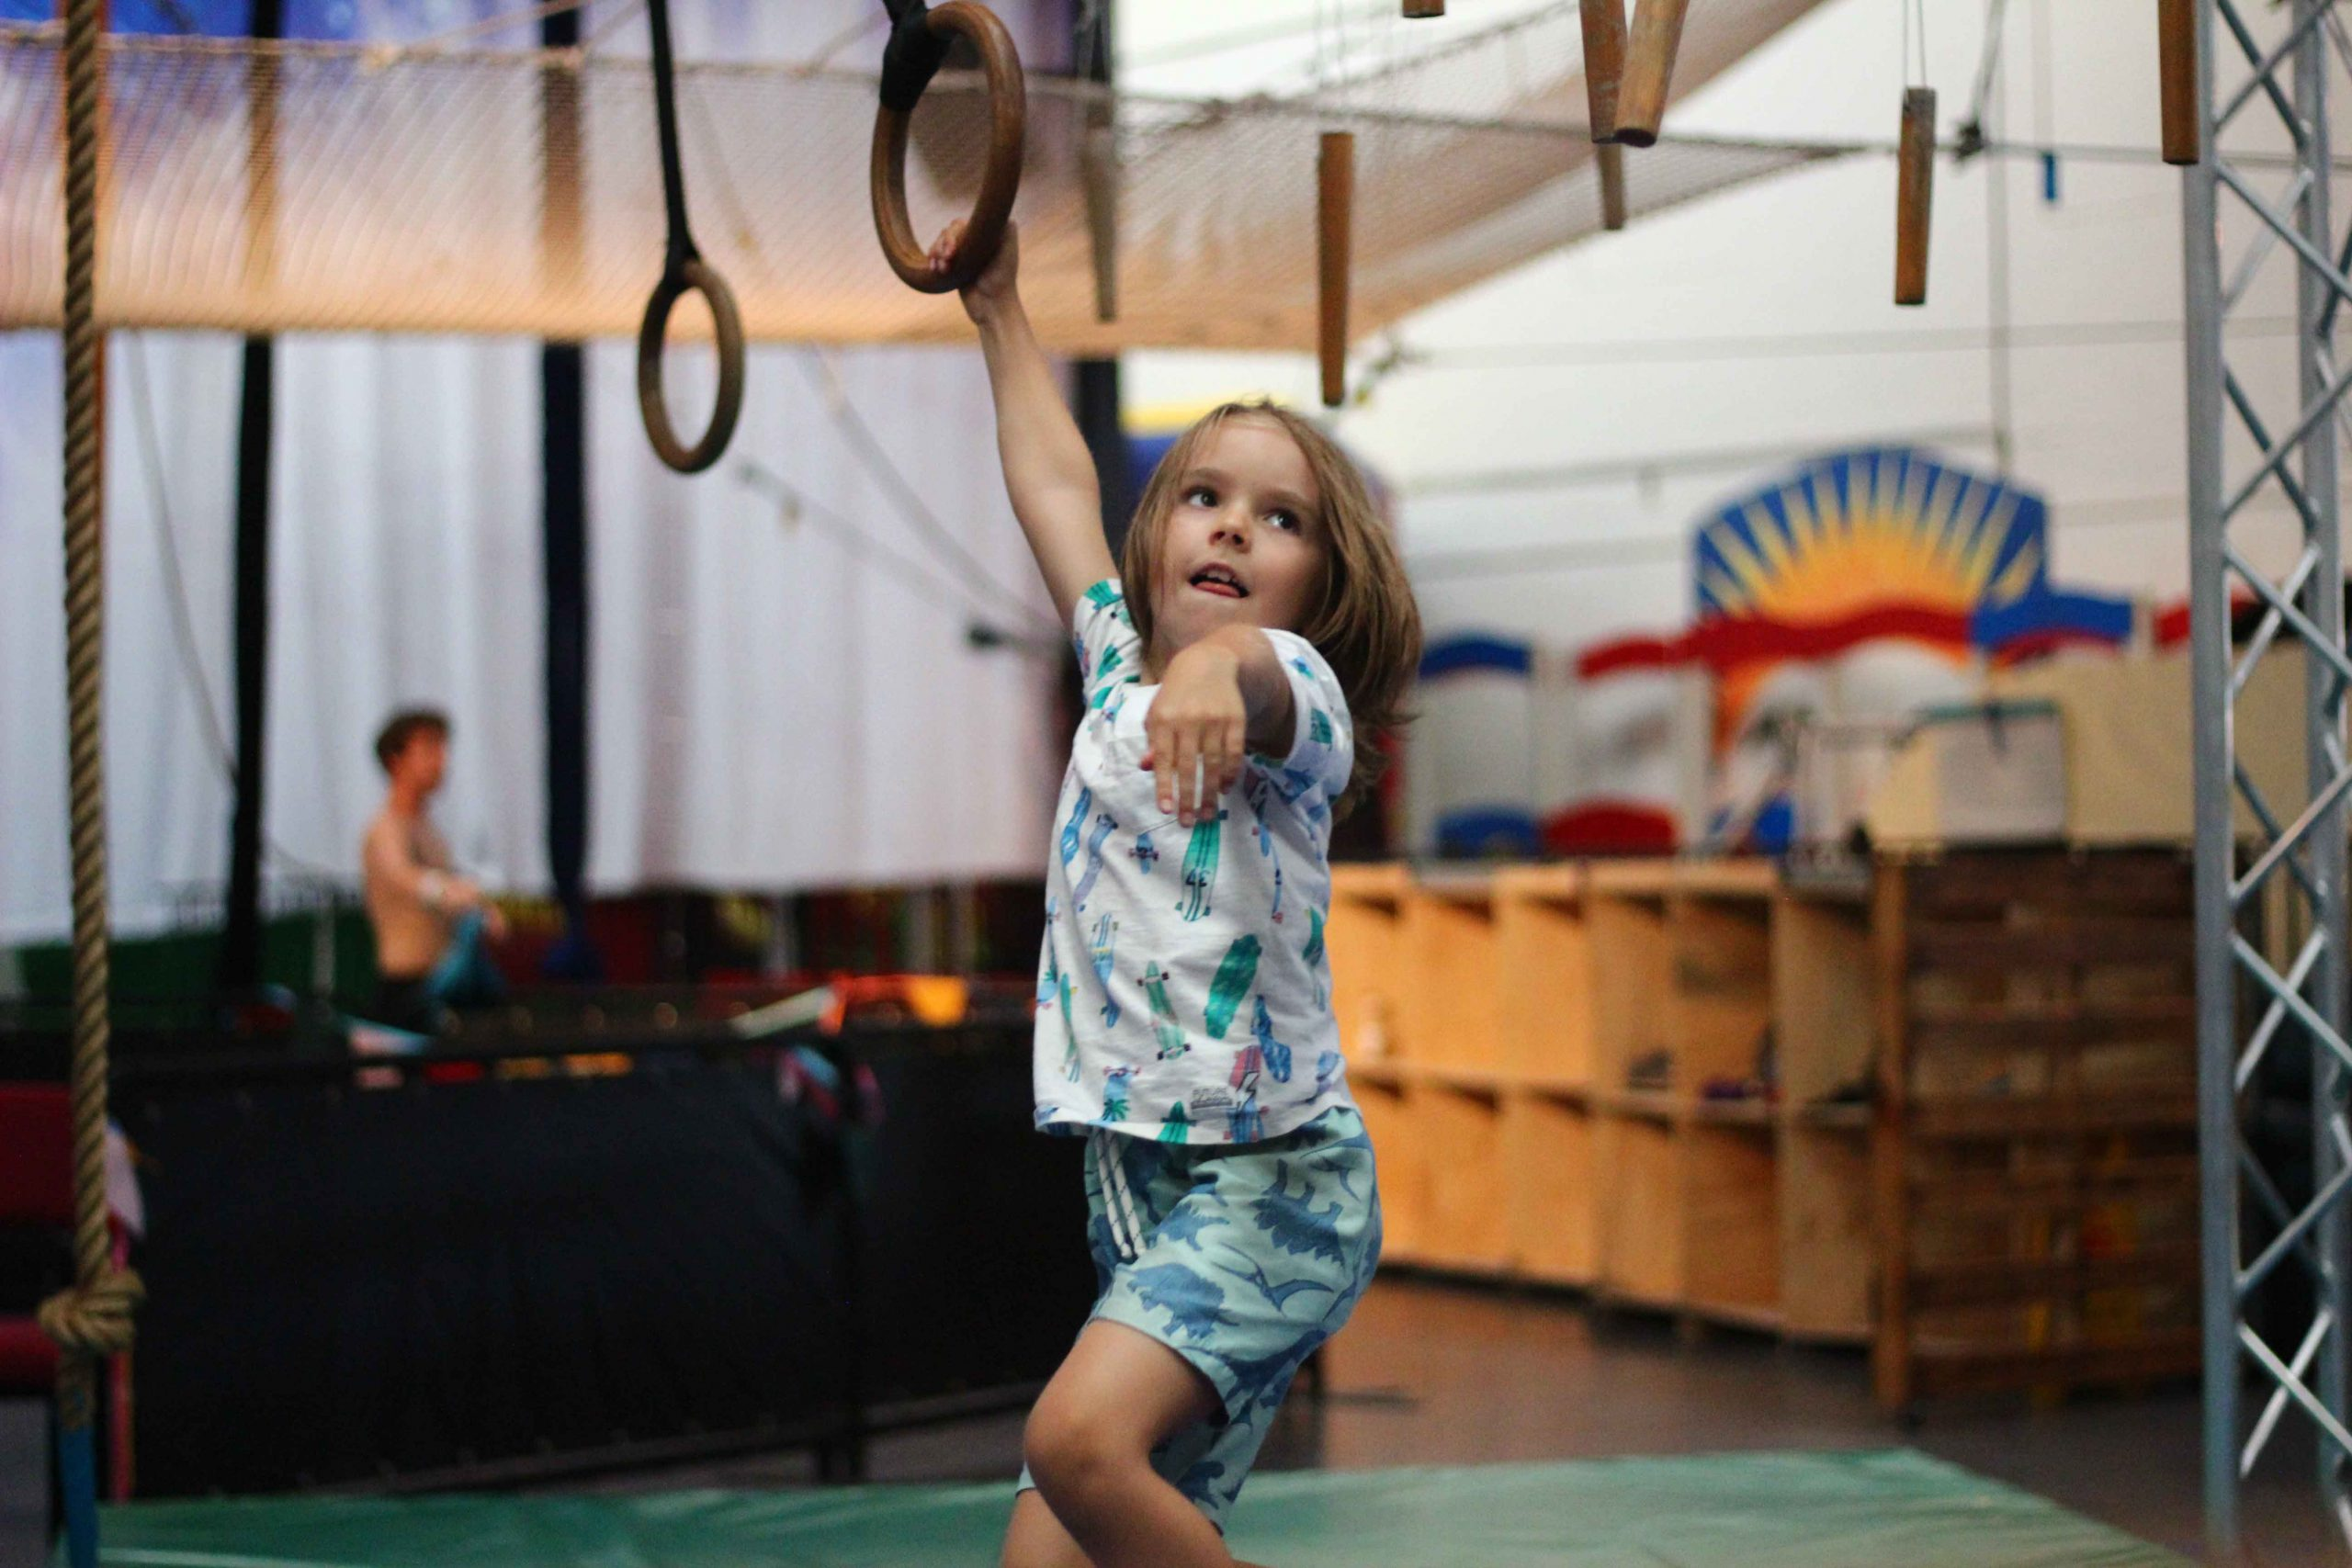 circus-arts-byron-bay-kids-teens-classes-ninja-parkour-4